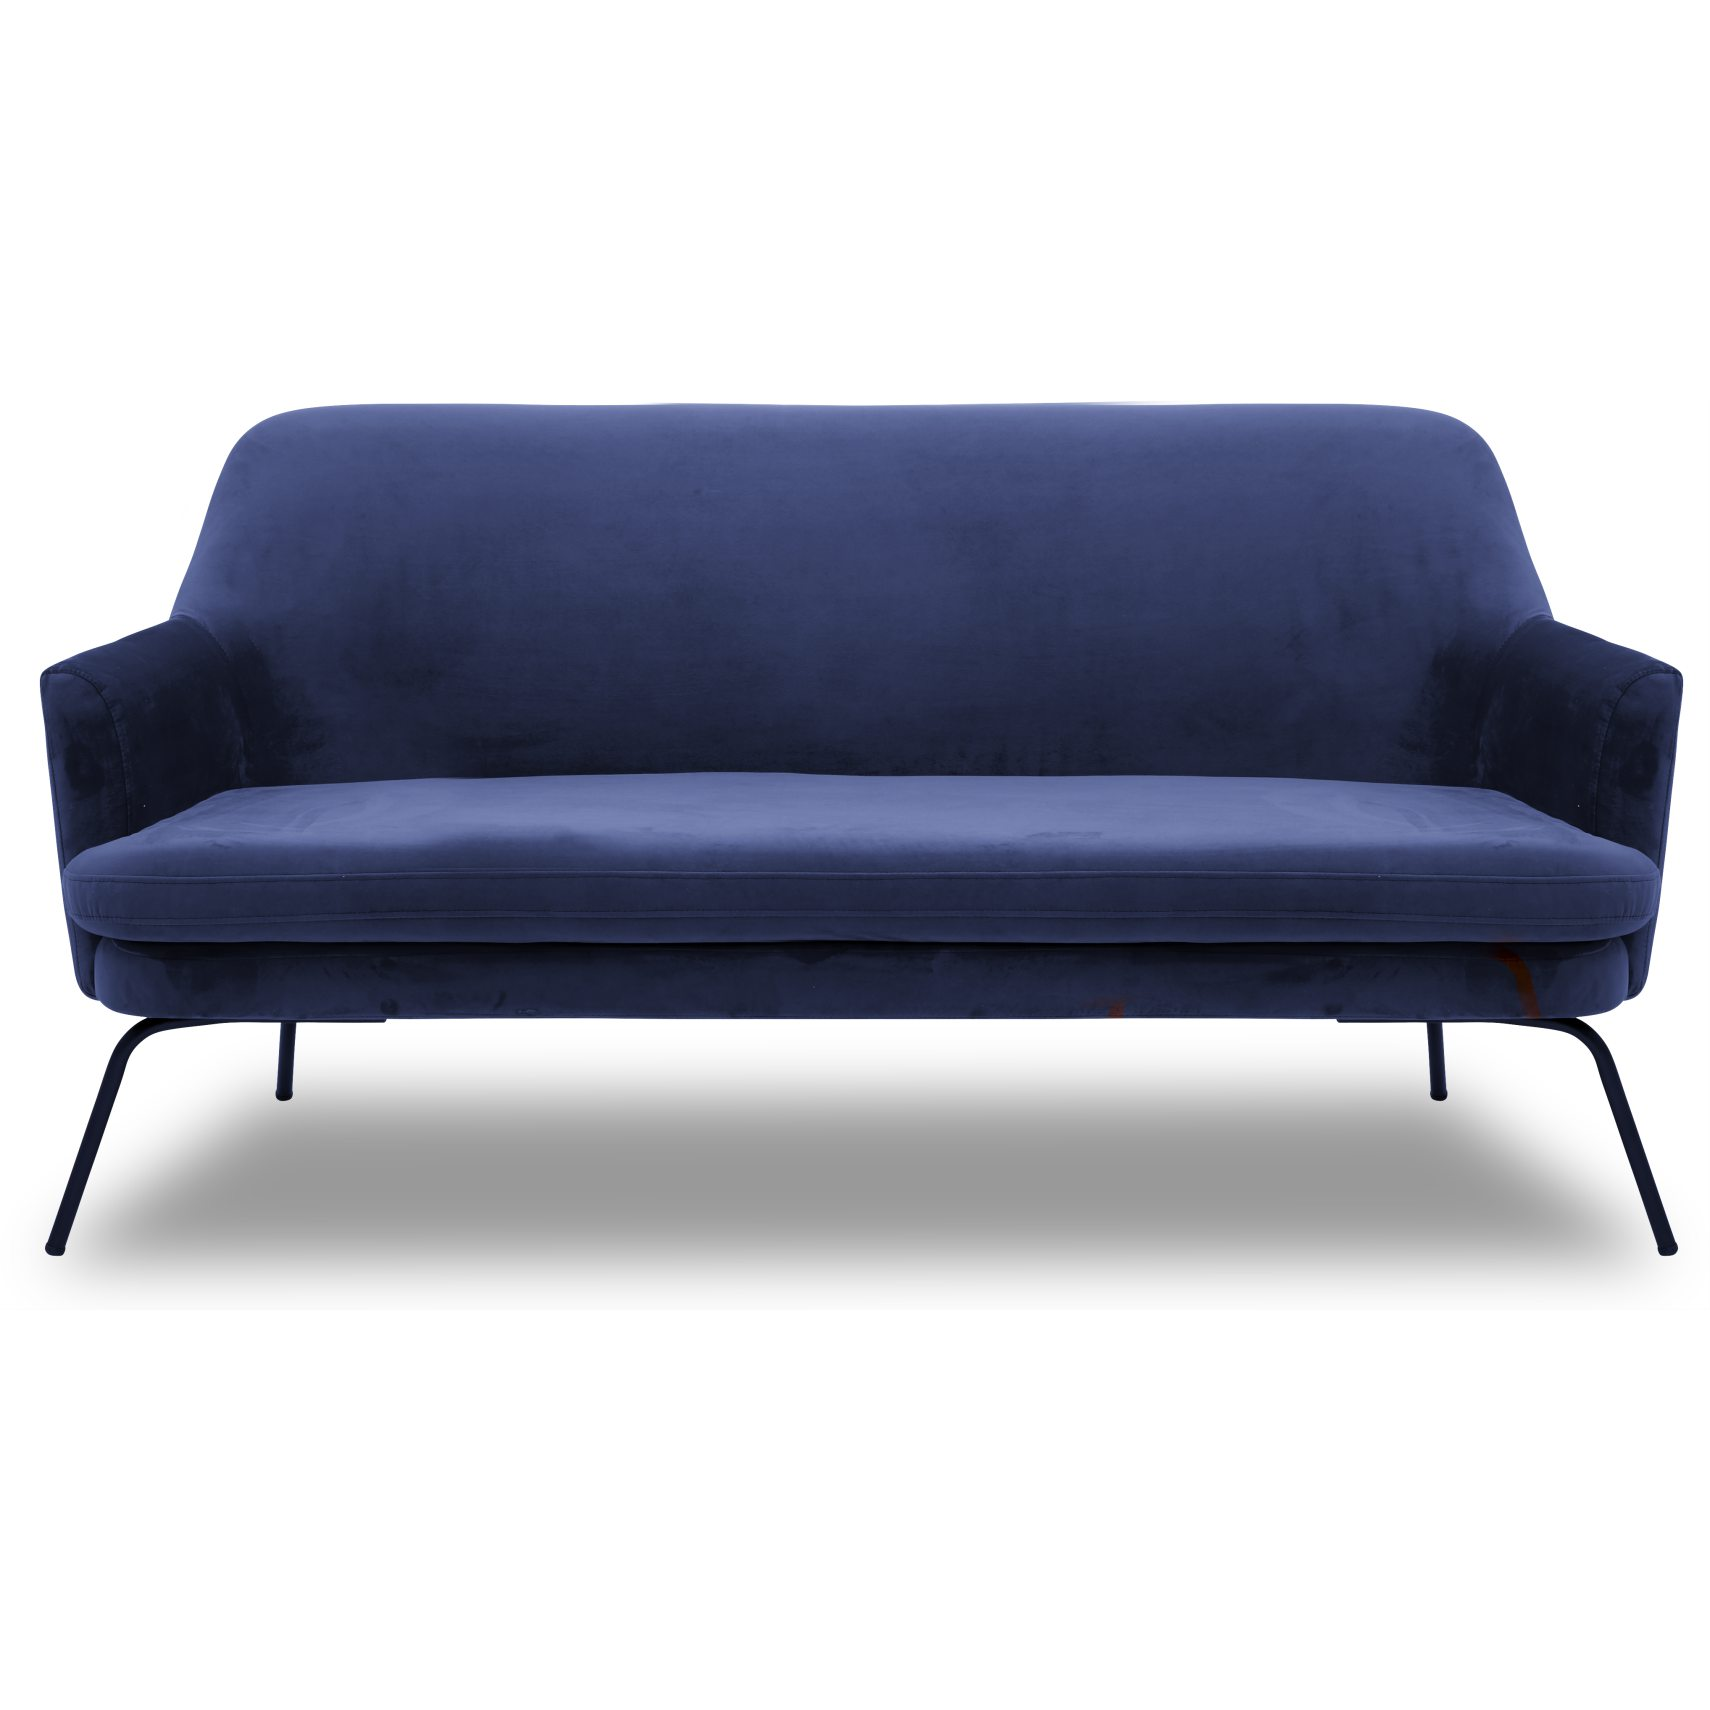 Chisa Sofa - Vic Navy Blue stof og med stel i sort metal